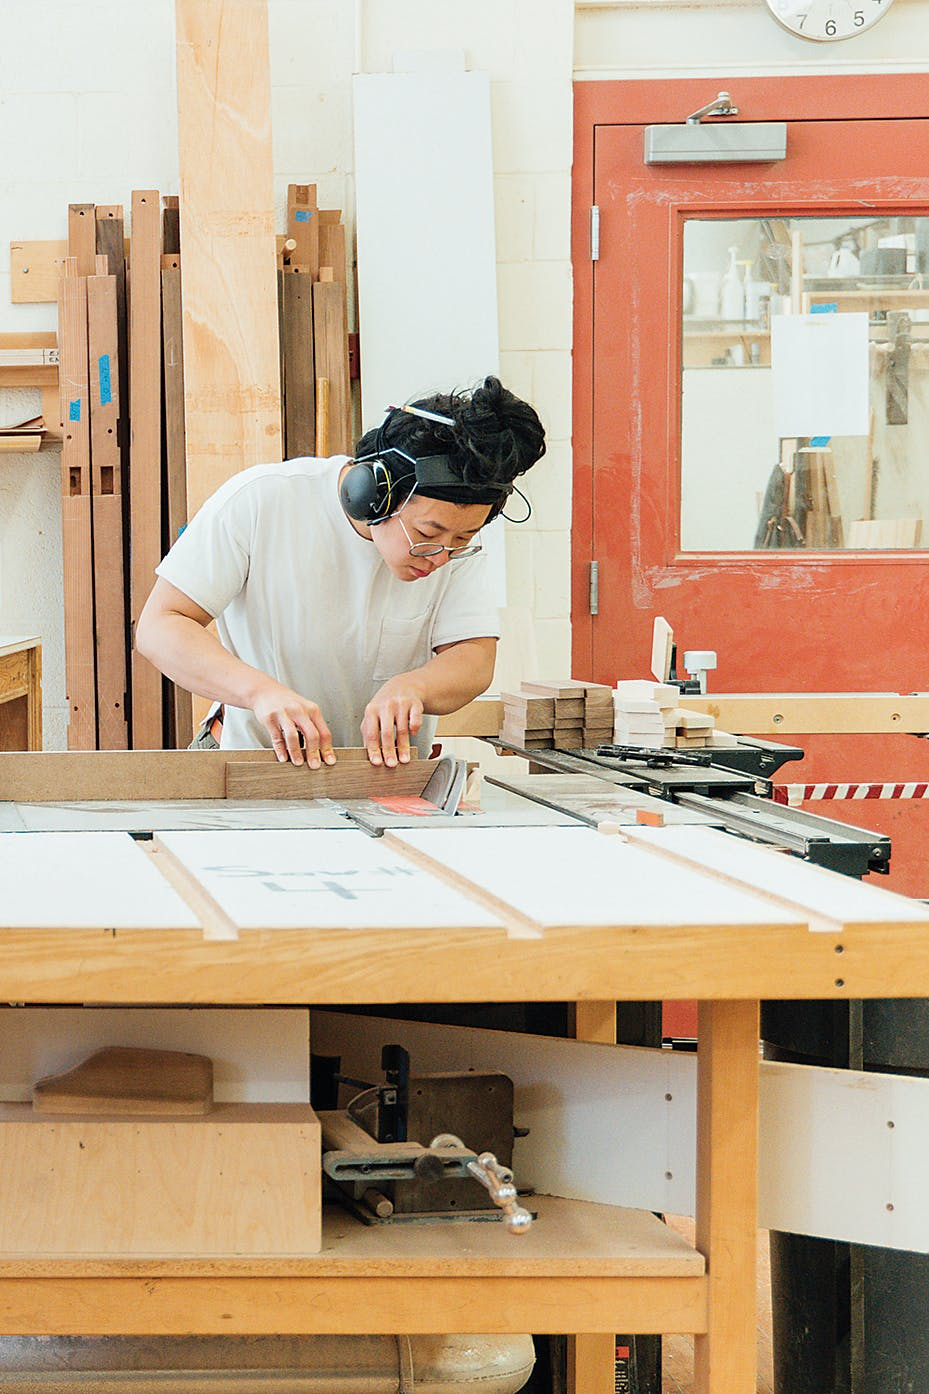 Wu Hanyen at work in studio